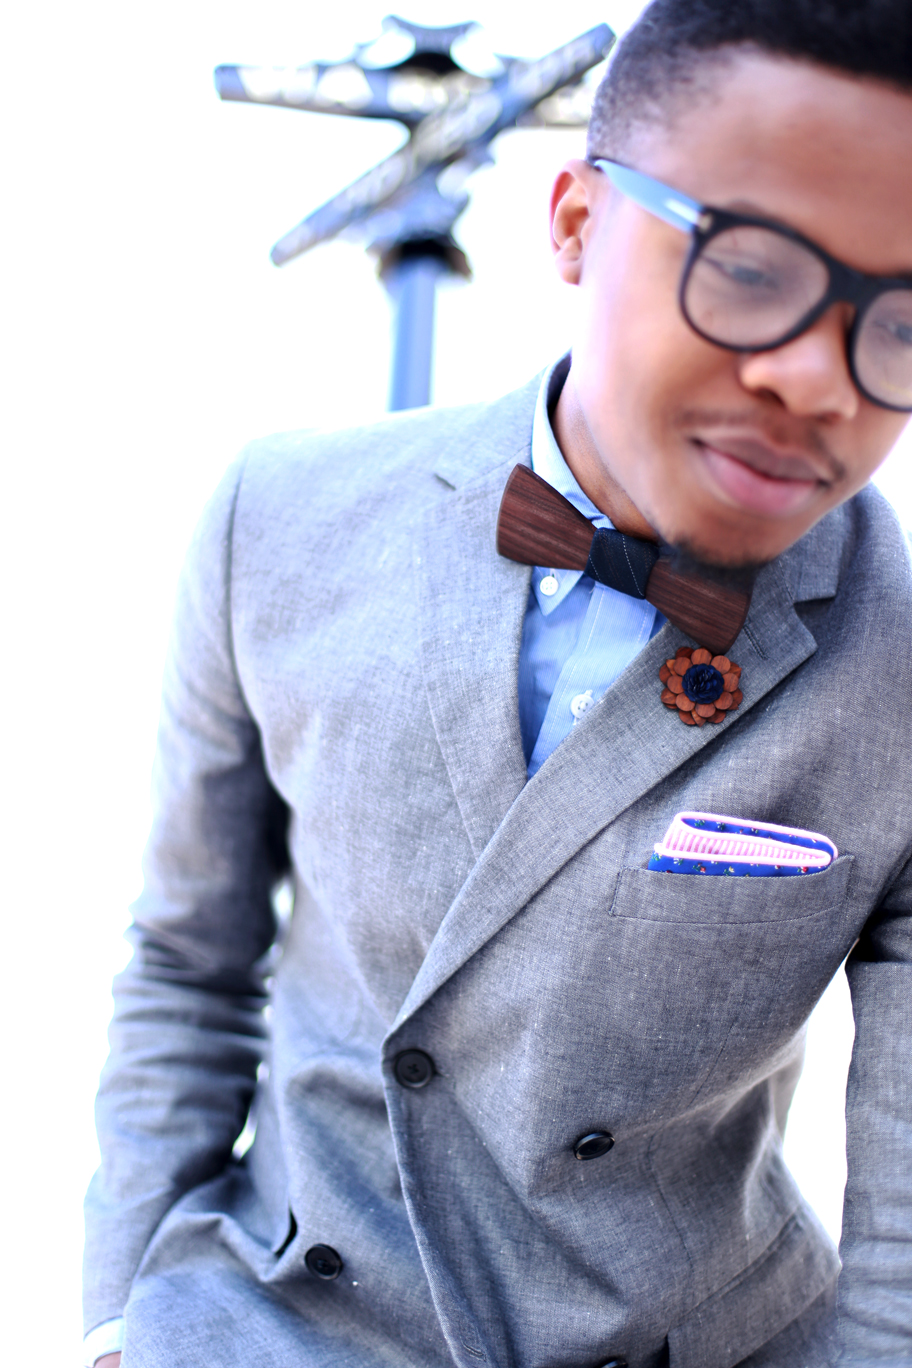 Butlers Fine Clothing of Florence, SC offers a full line of top quality men's clothing and accessories. Everything from shoes to suits, shirts and ties. We also carry a full line of casual wear for the discriminating man.